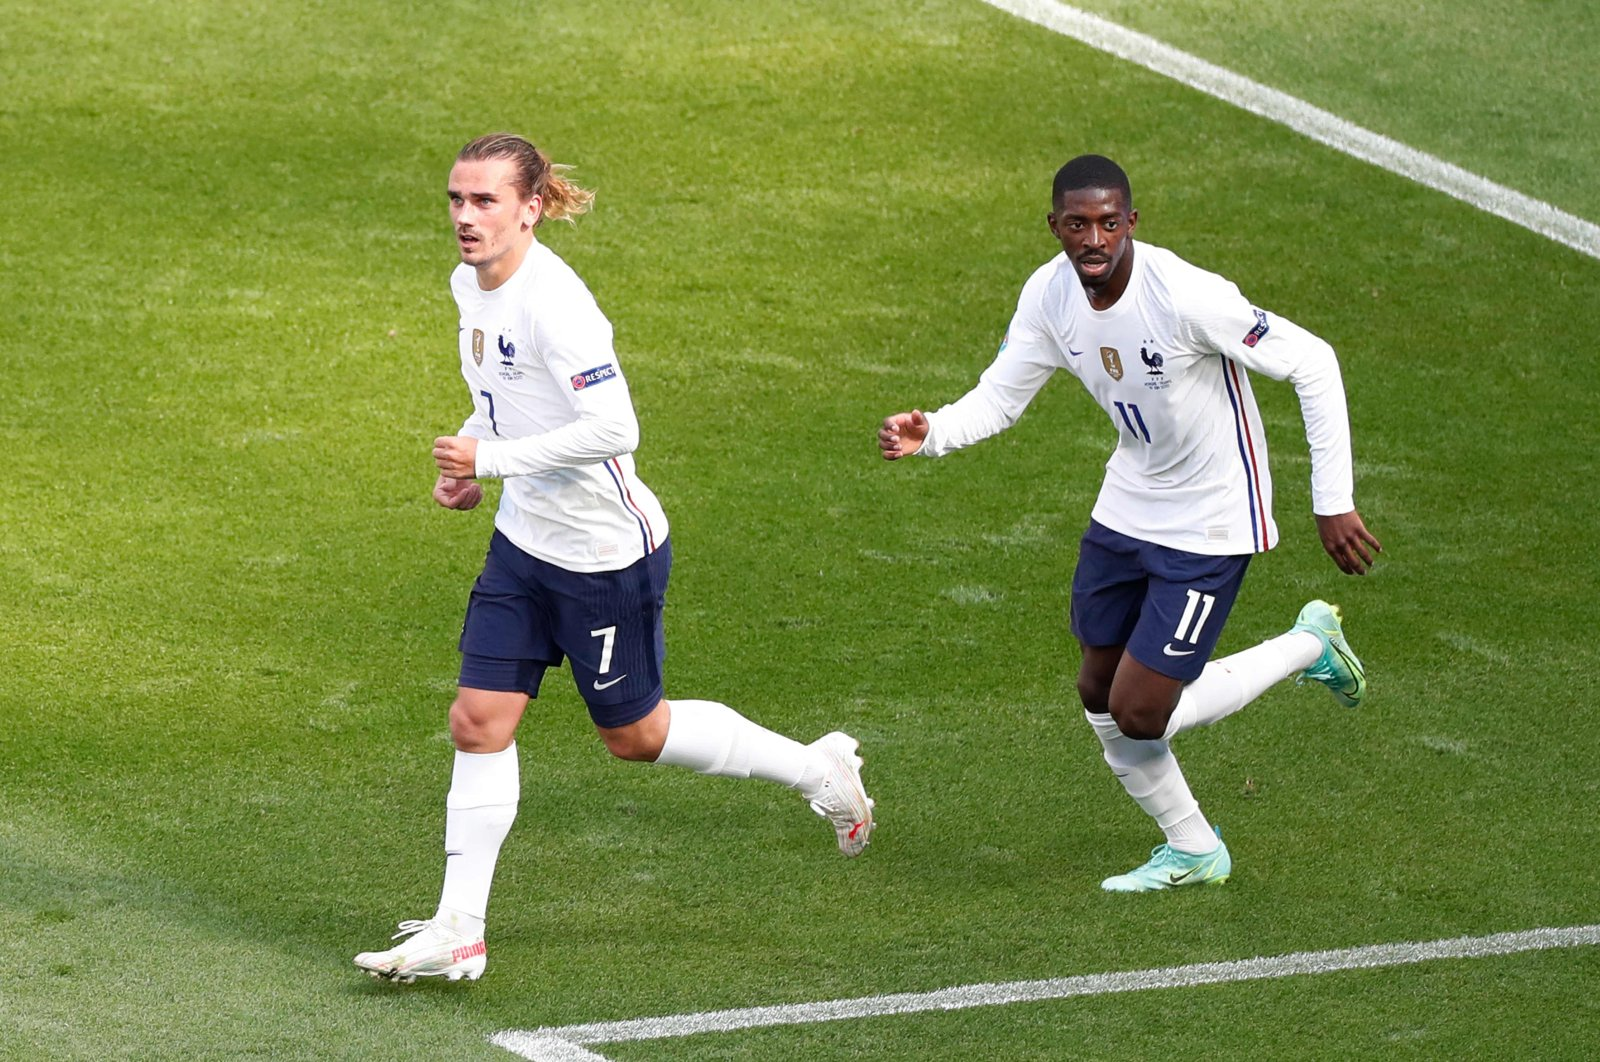 France's Antoine Griezmann (L) celebrates scoring his team's first goal with teammate Ousmane Dembele during a UEFA Euro 2020 match against Hungary at Puskas Arena, Budapest, June 19, 2021. (AFP Photo)